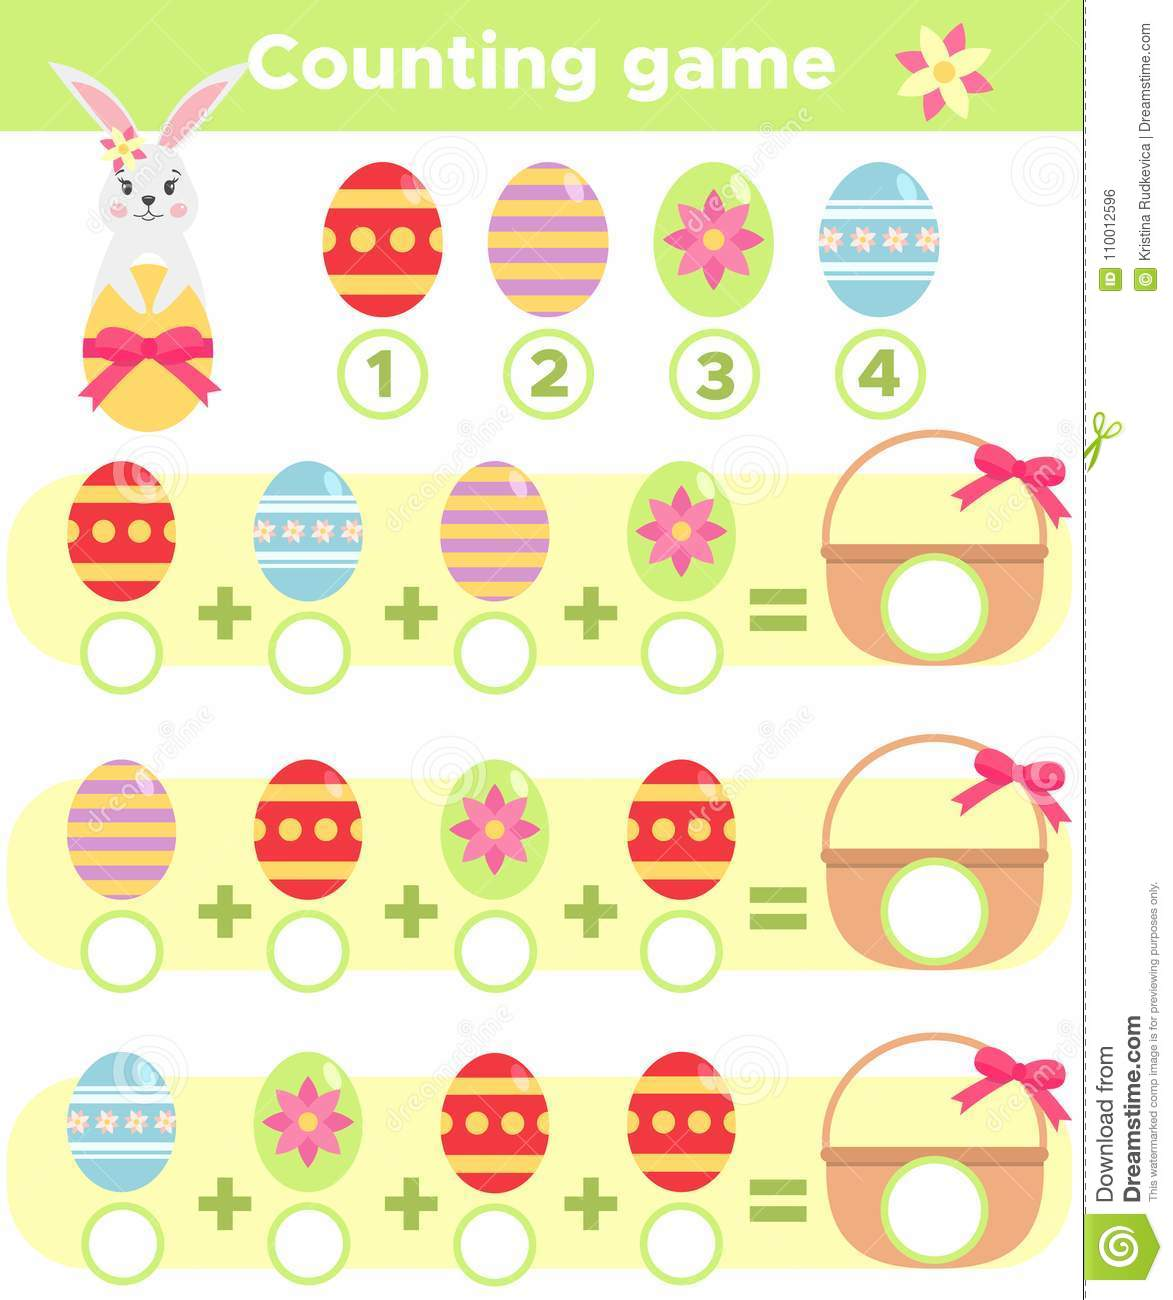 Counting Spring Game For Children Stock Vector - Illustration of ...